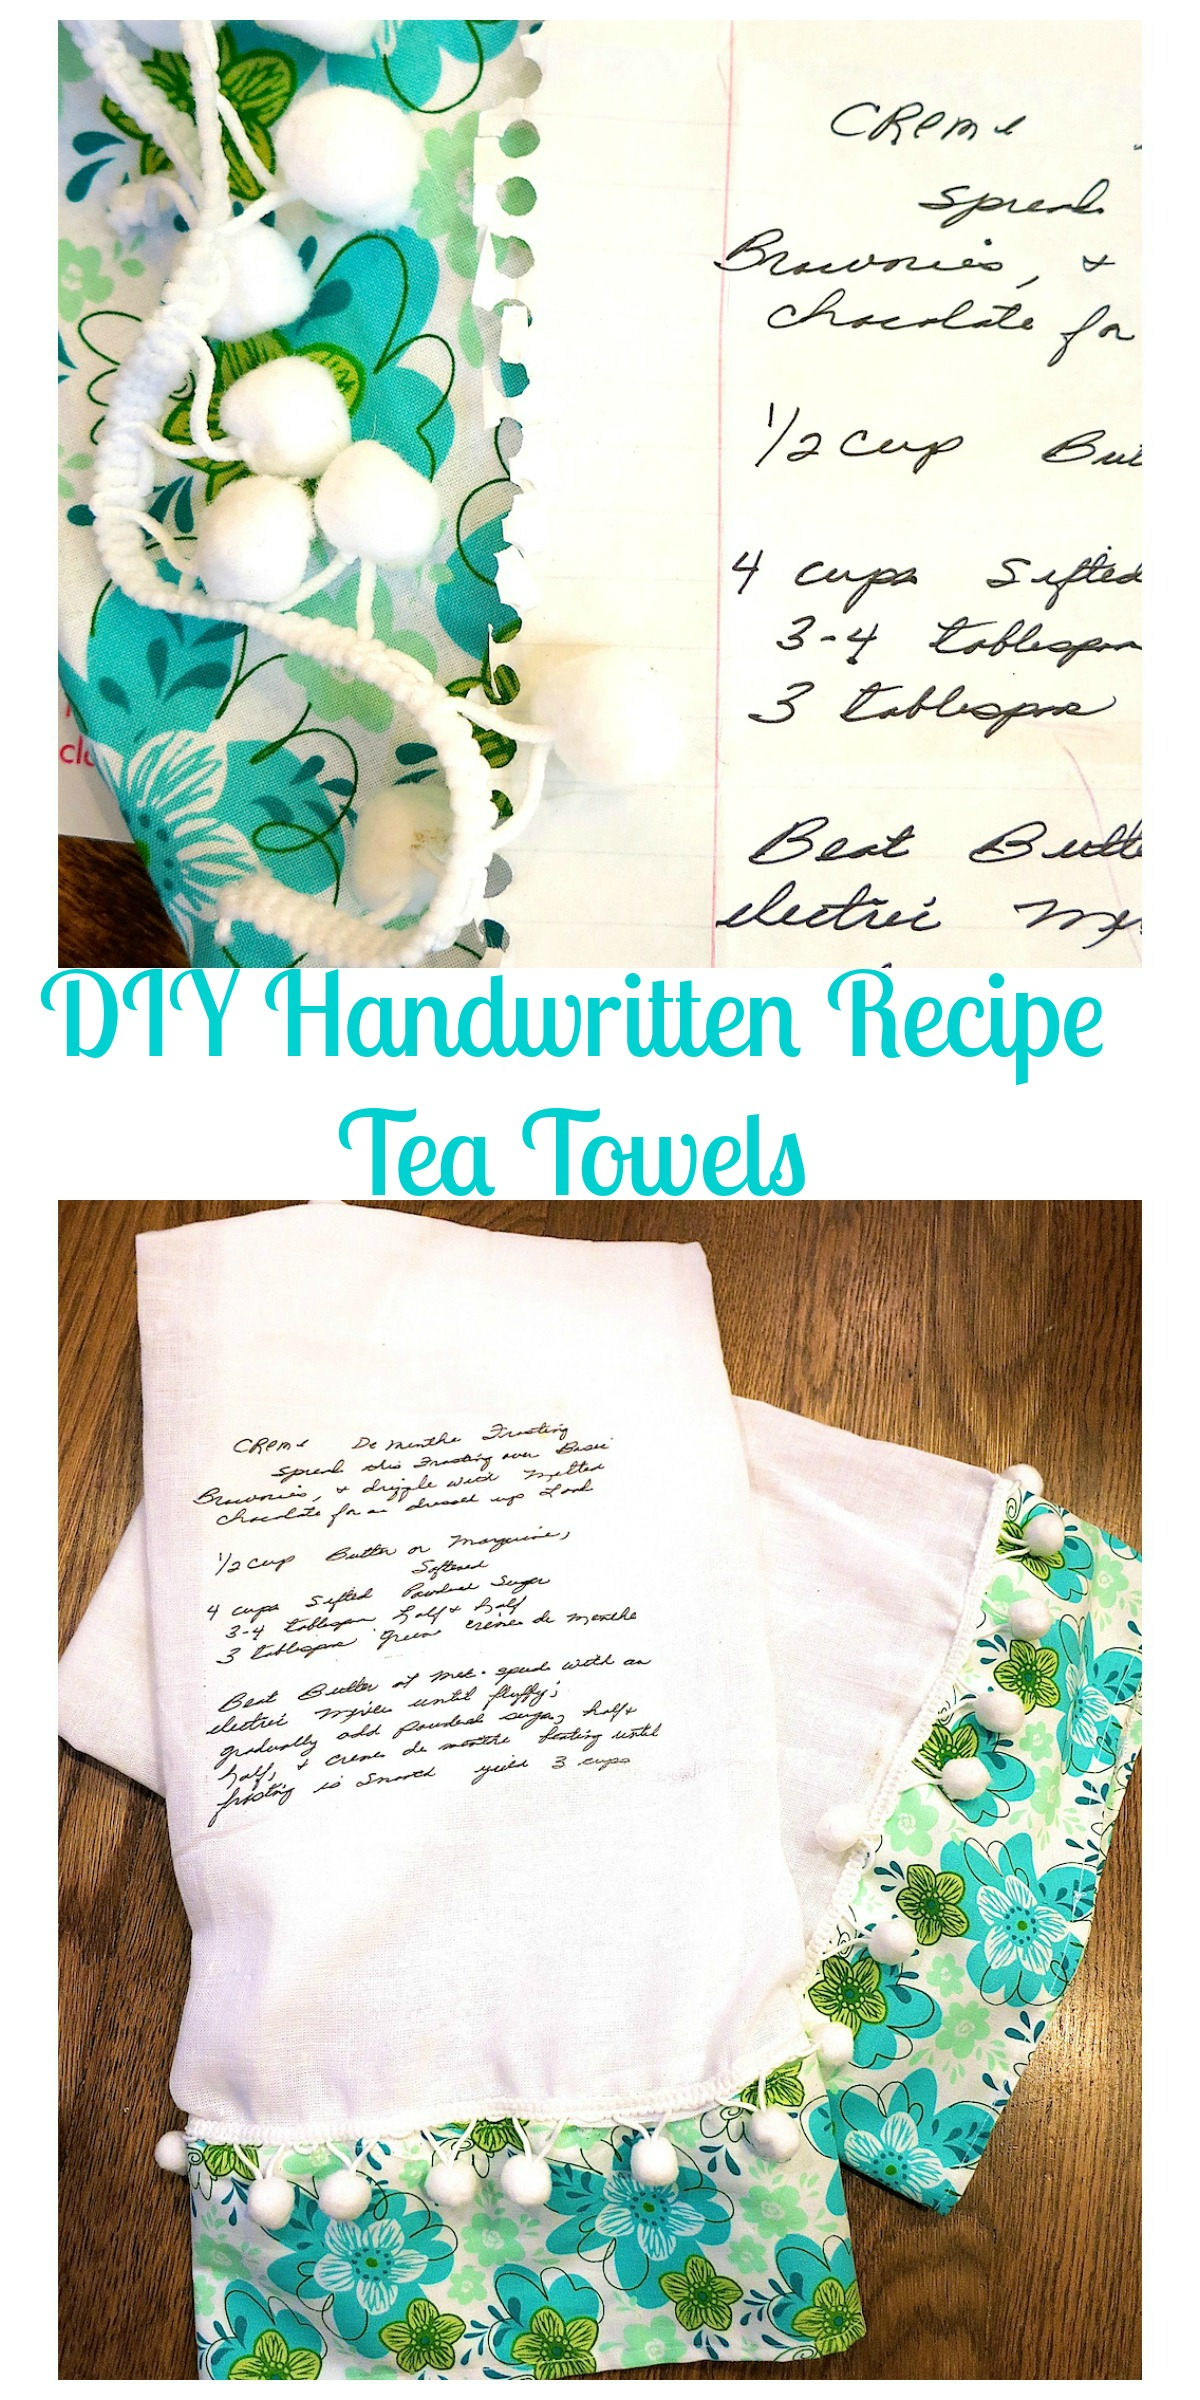 DIY Handwritten Recipe Tea Towels. Print a family recipe onto a tea towel. Great keepsake gift for Mother's Day, Birthday or Christmas. Wonderful way to share a treasured family recipe!